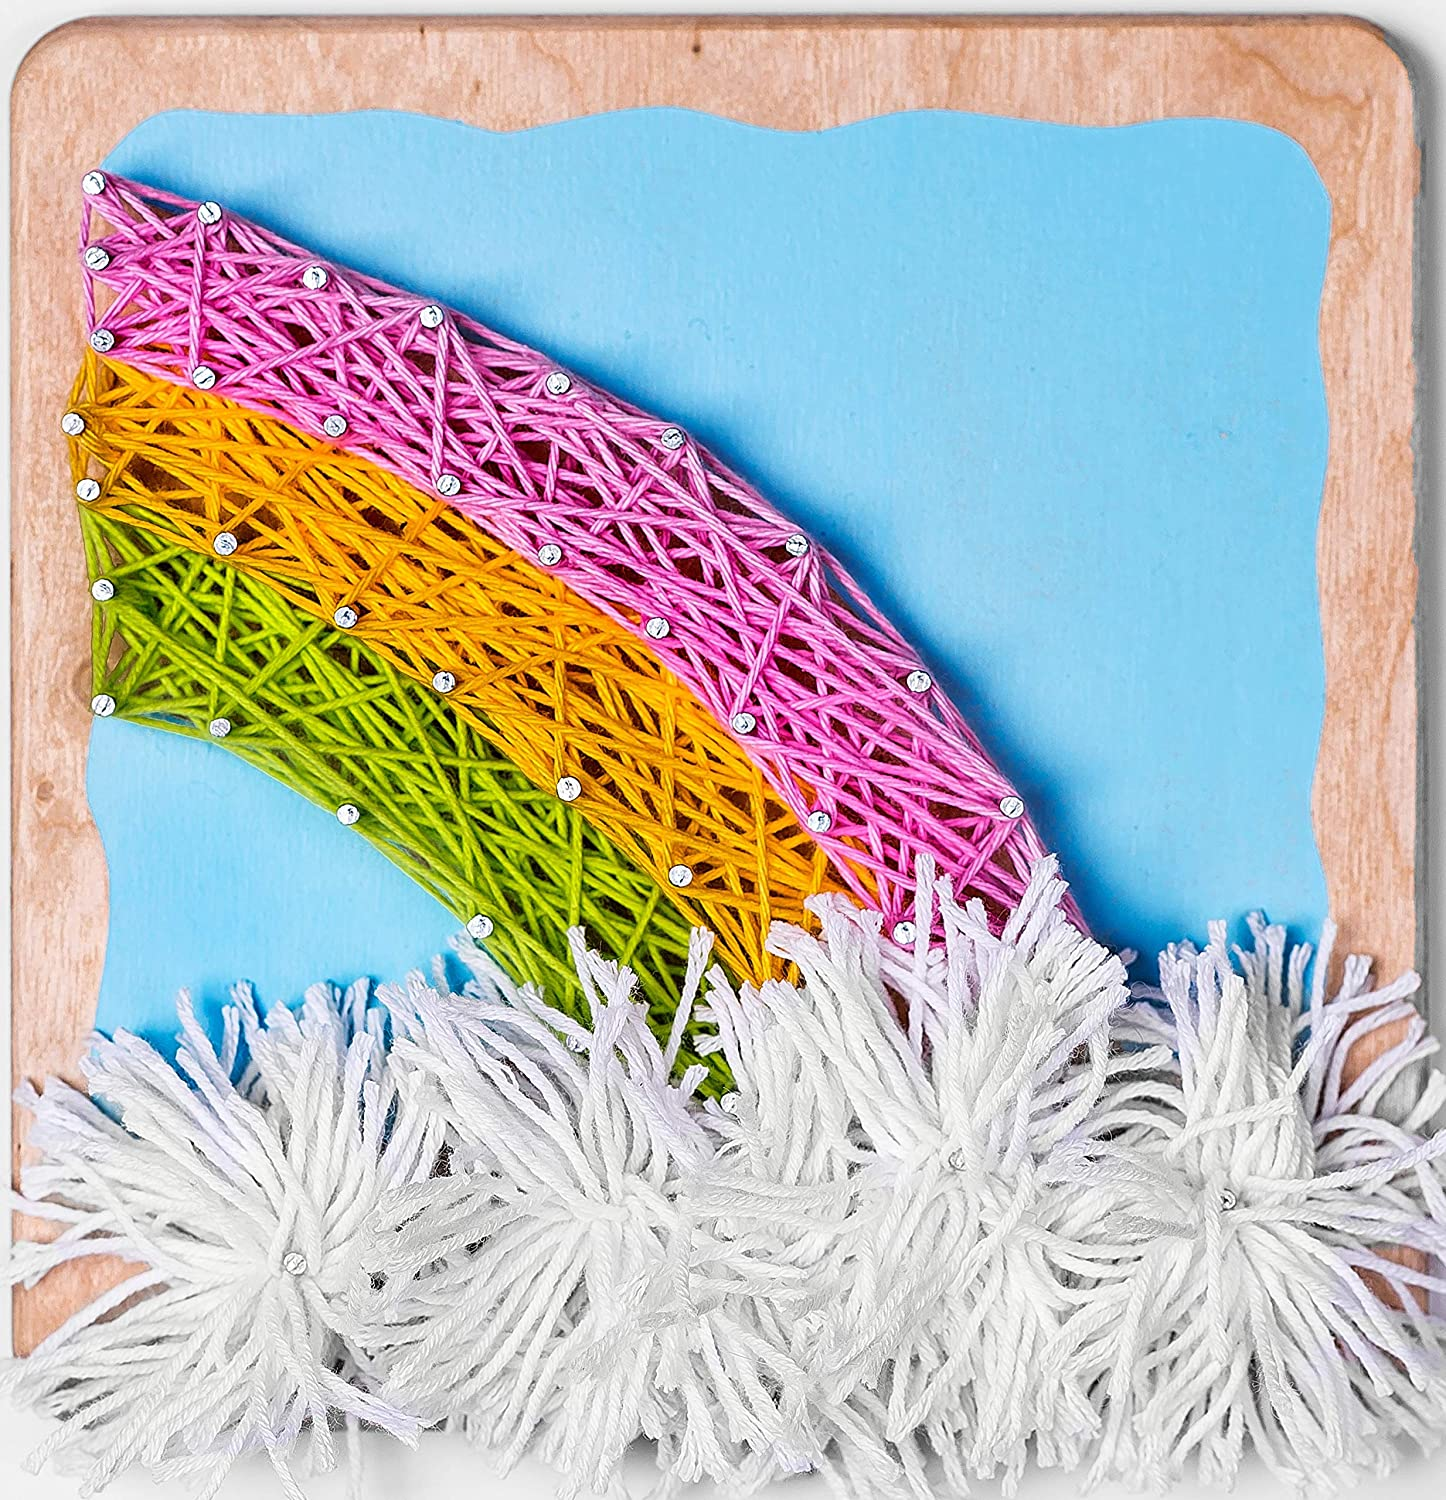 Fornel String Art Kit Rainbow - Bigger Size Canvas - Colored DIY Rainbow Art String Crafts for Girls Kids Teens Ages 8-15